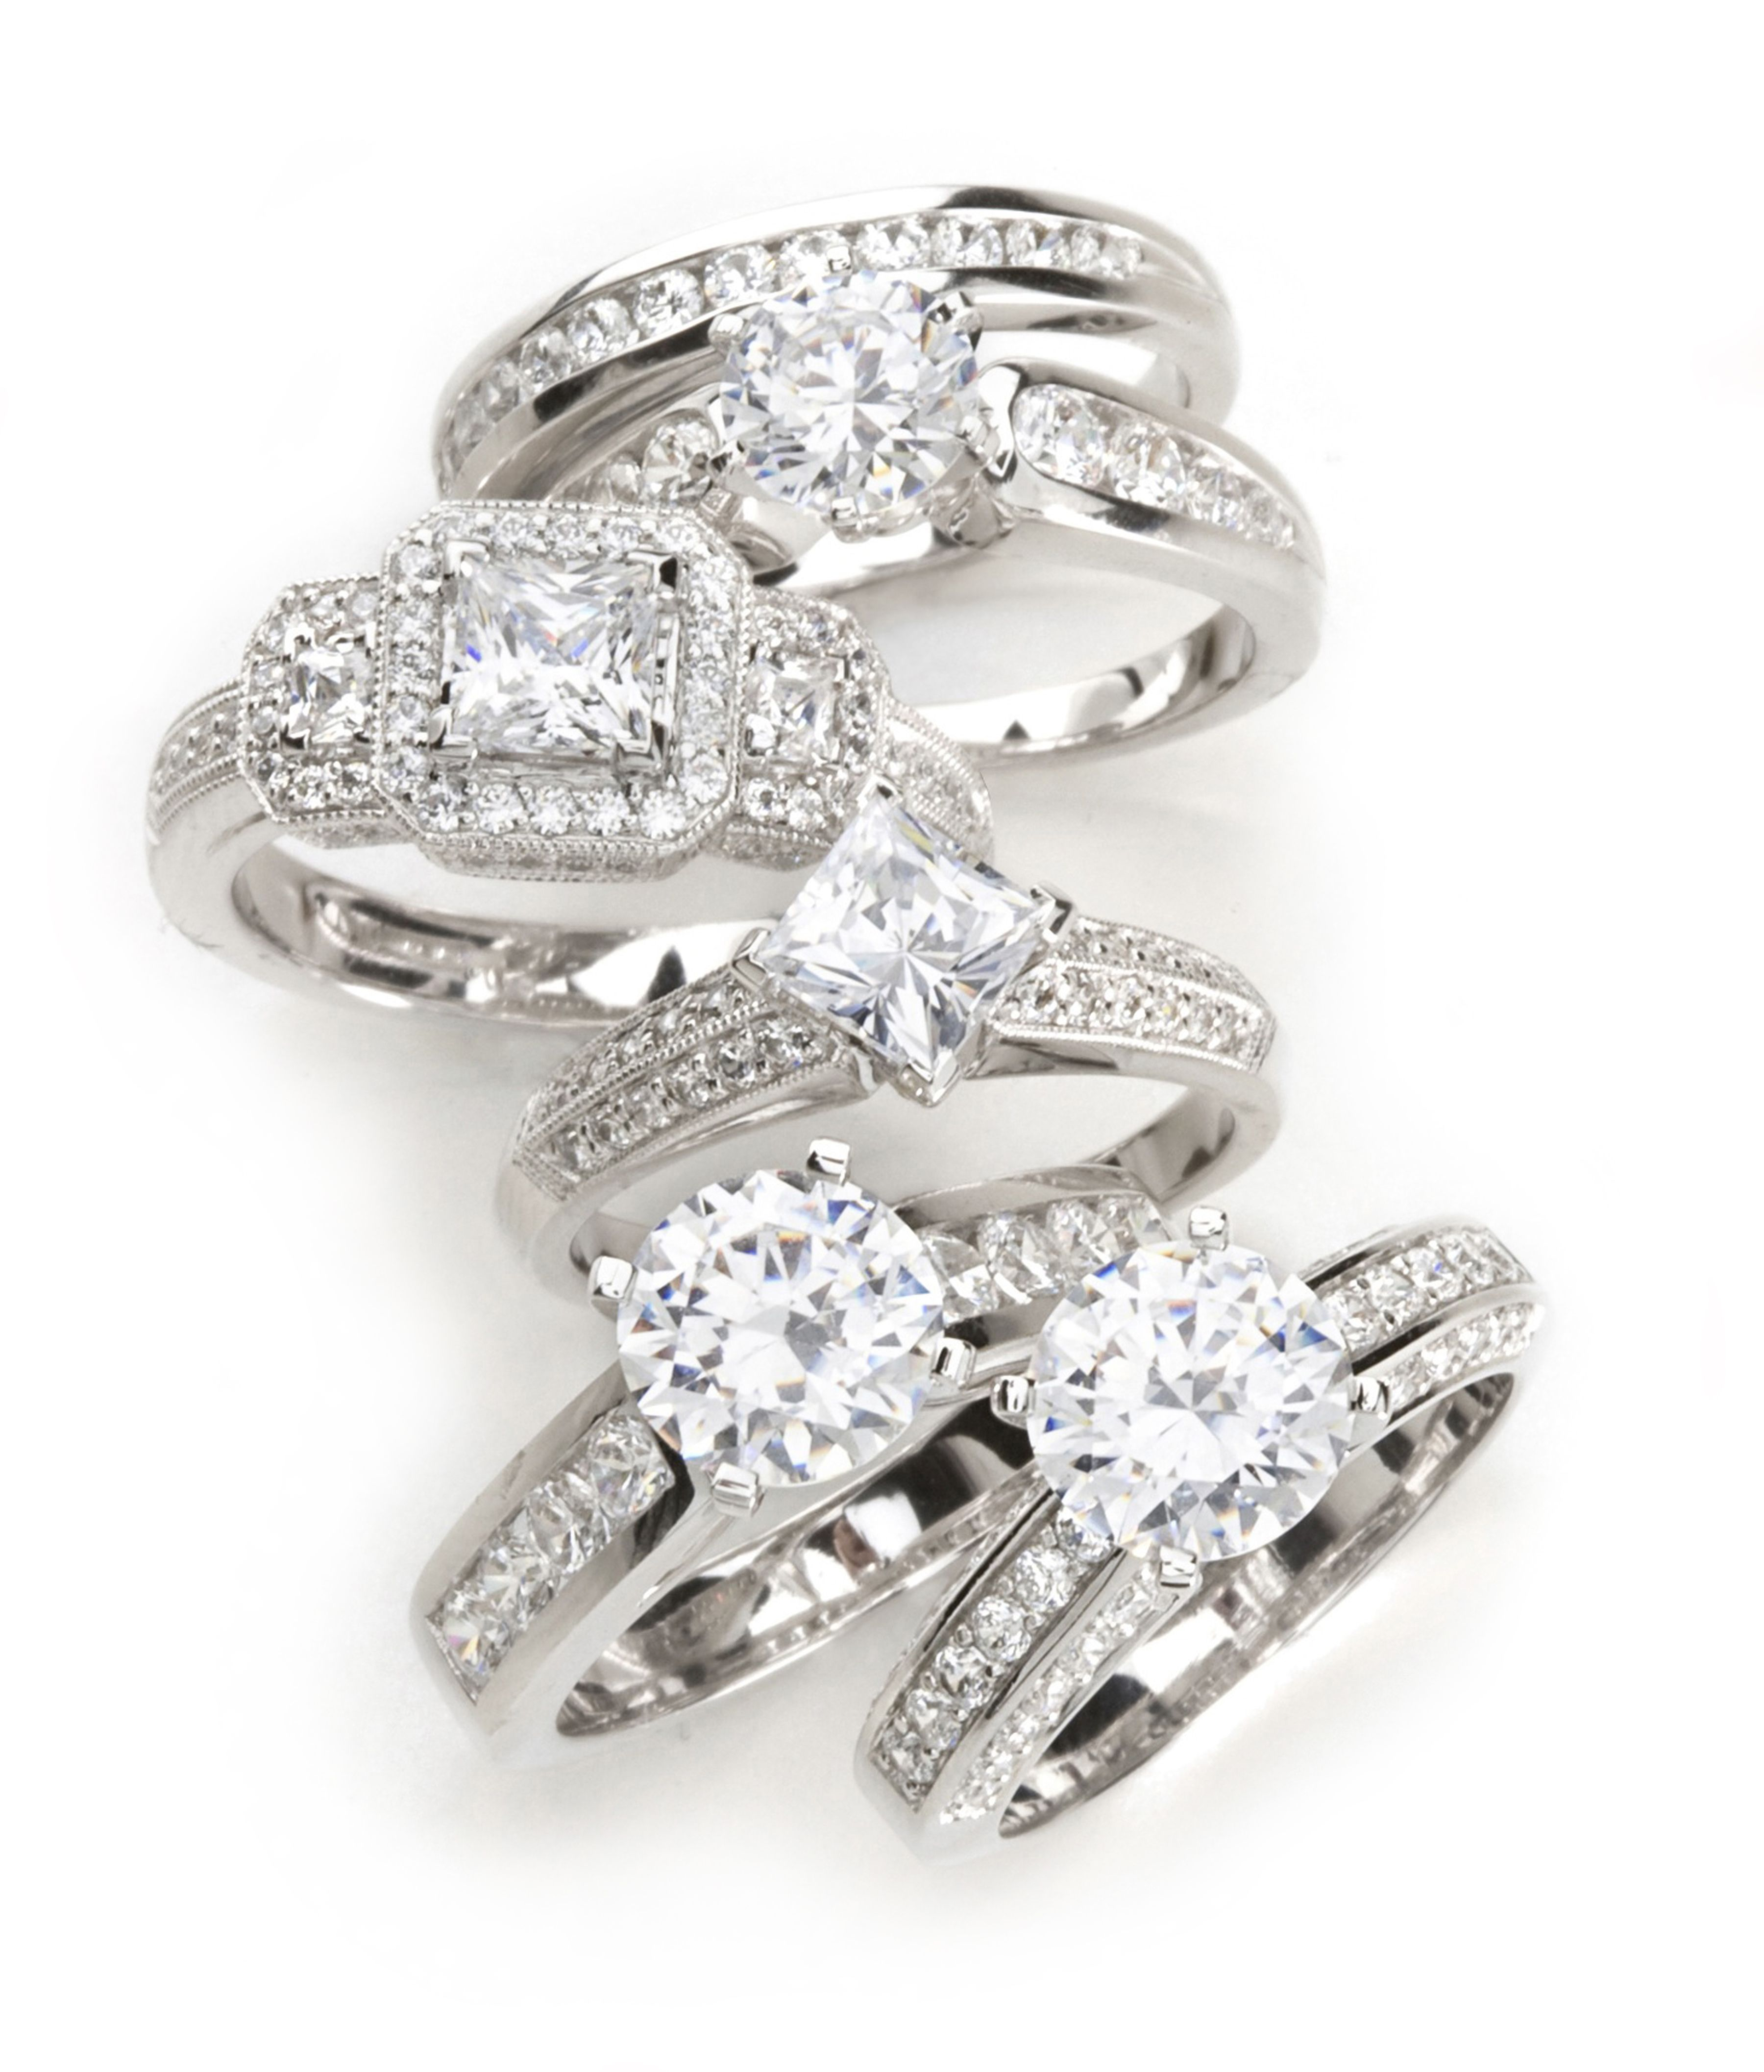 What's your style? Big wedding rings, Top engagement